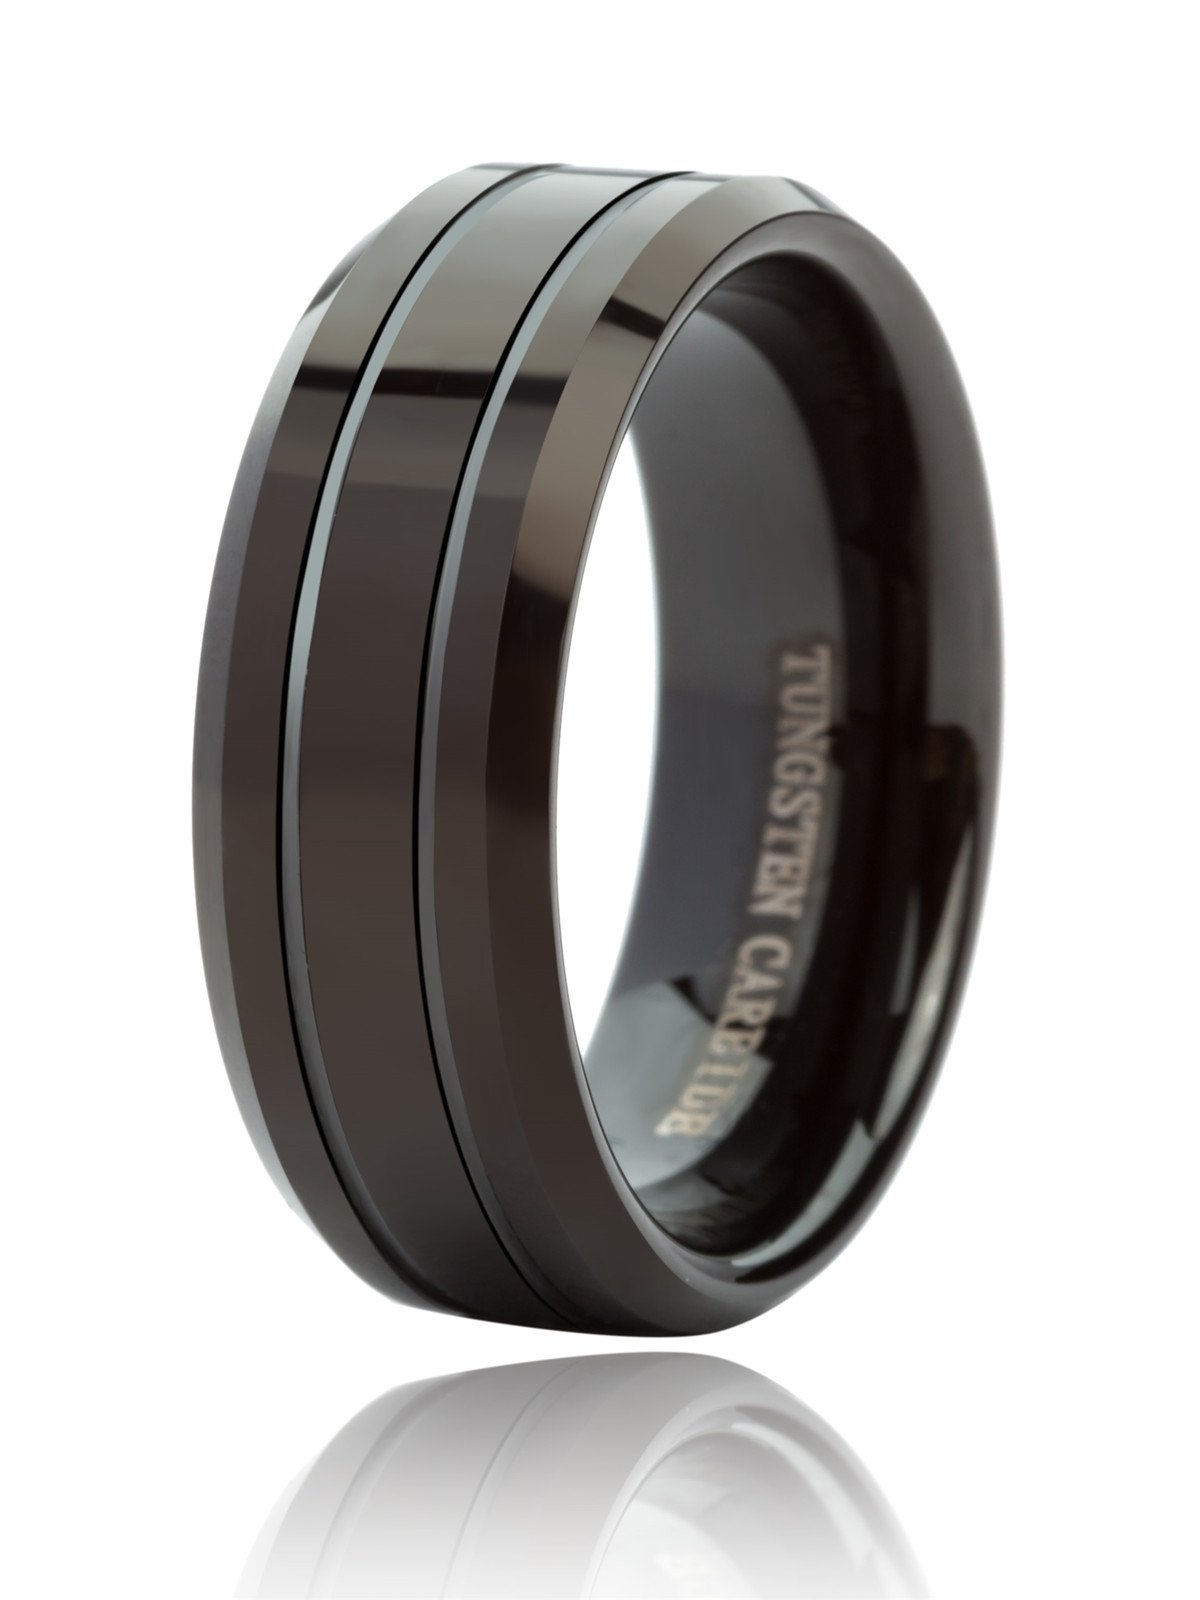 Just Lsy Mens 8mm Black Tungsten Carbide Rings Polished Beveled Edge Double Groove Classic Wedding Bands Comfort Fit Size 11